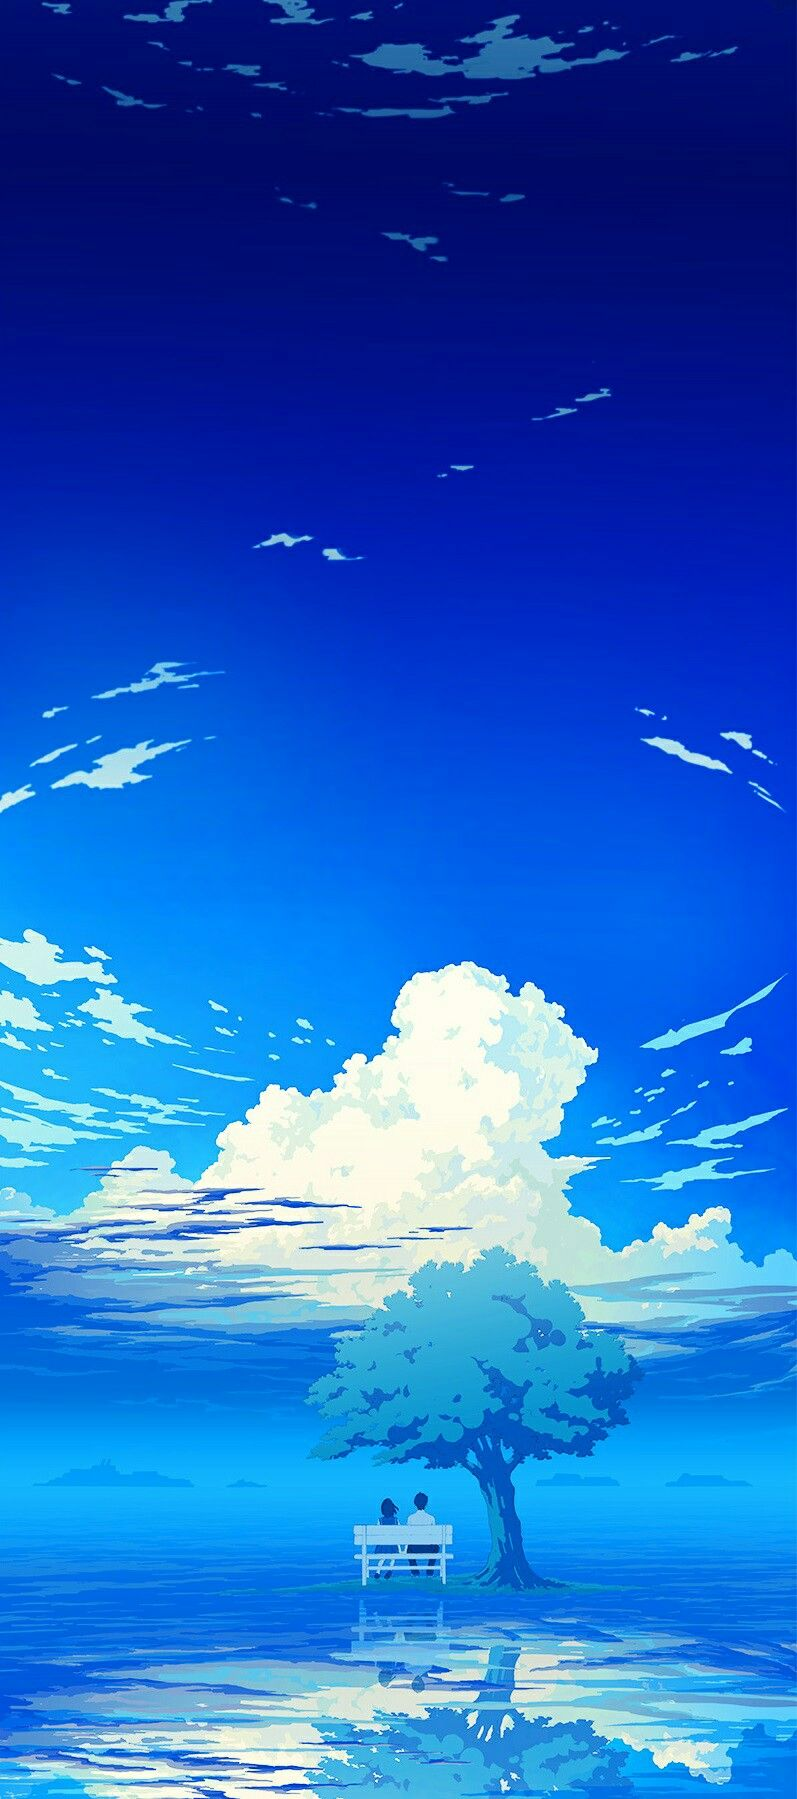 Vocaloid iphone wallpaper tumblr - Tumblr Blue Sky